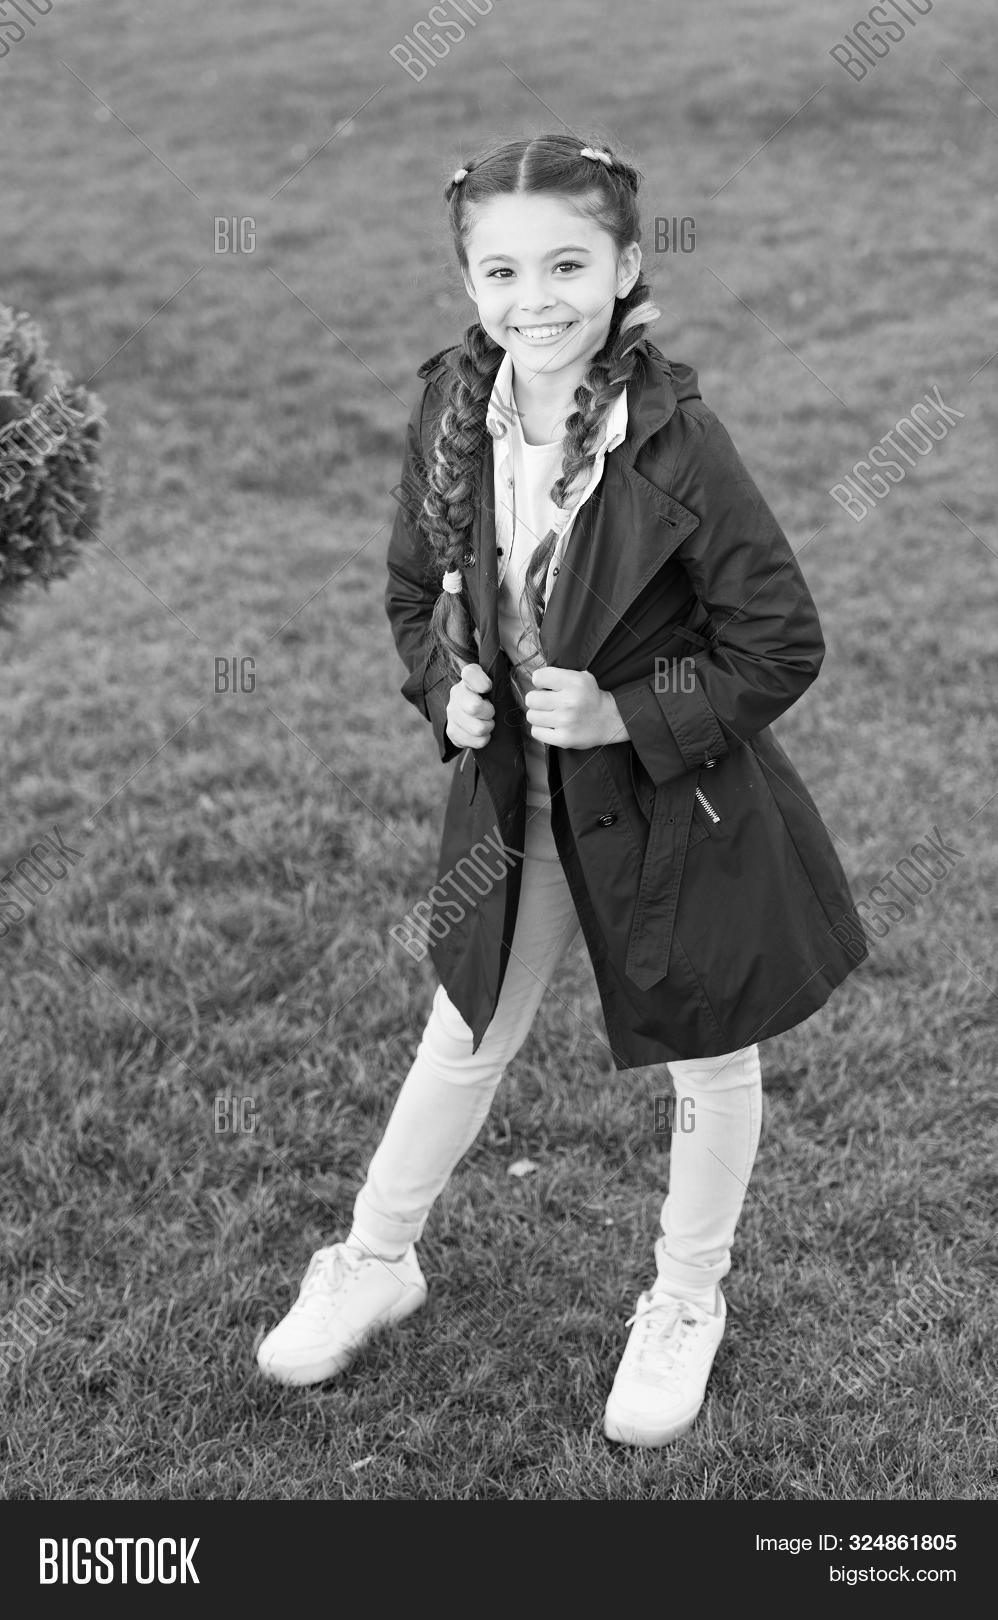 accessory,braided,child,clothes,clothing,coat,cold,concept,cute,day,enjoy,face,fashion,fashionable,garment,girl,hair,hairstyle,have,holiday,hood,international,jacket,kid,leisure,little,model,must,park,posing,pretty,season,seasonal,smile,spring,stylish,trench,trend,walk,warm,wear,wearing